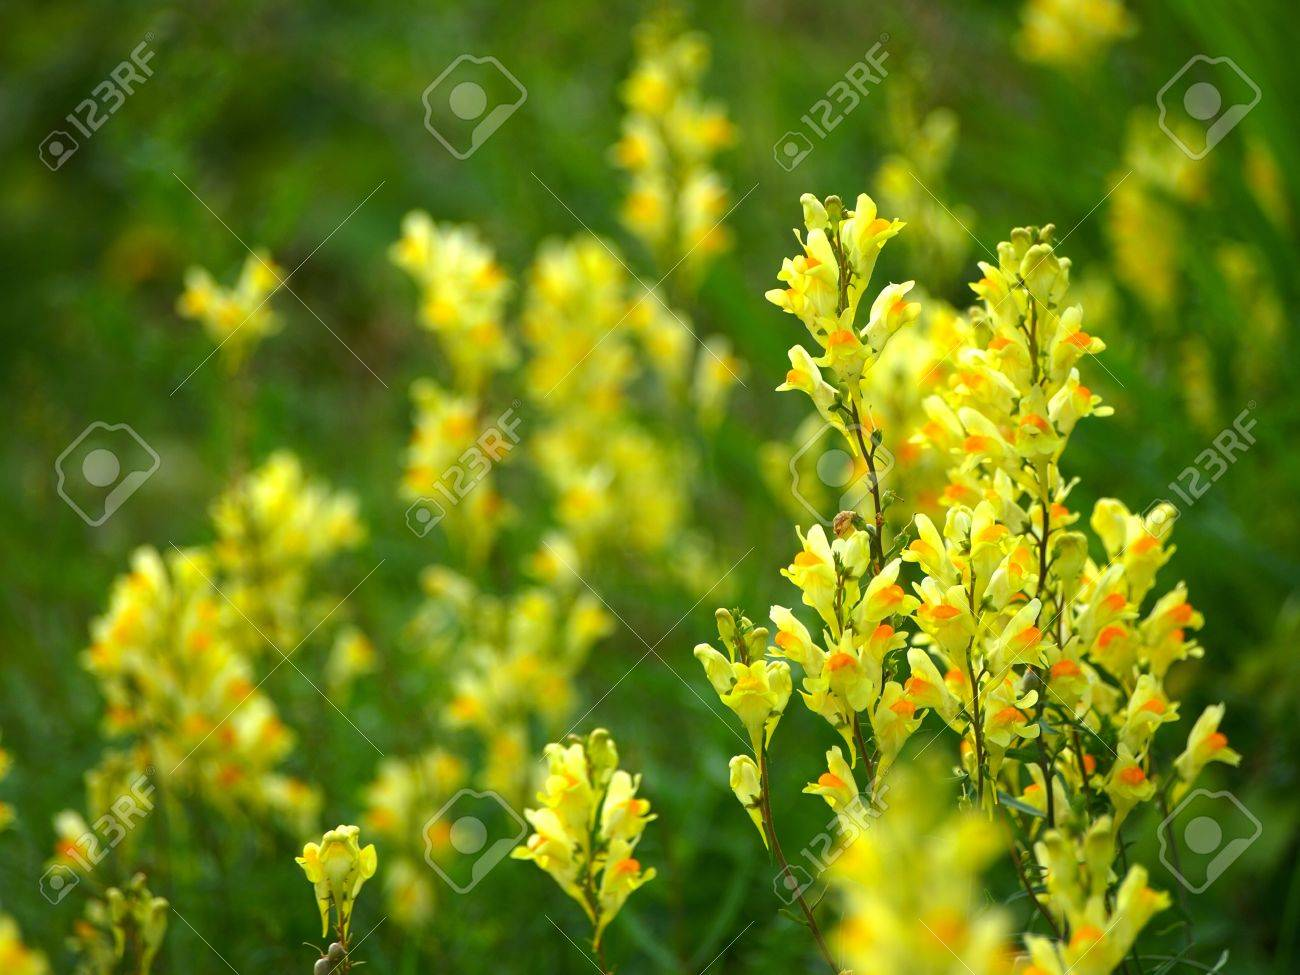 Yellow Flower Of A Weed Stock Photo Picture And Royalty Free Image